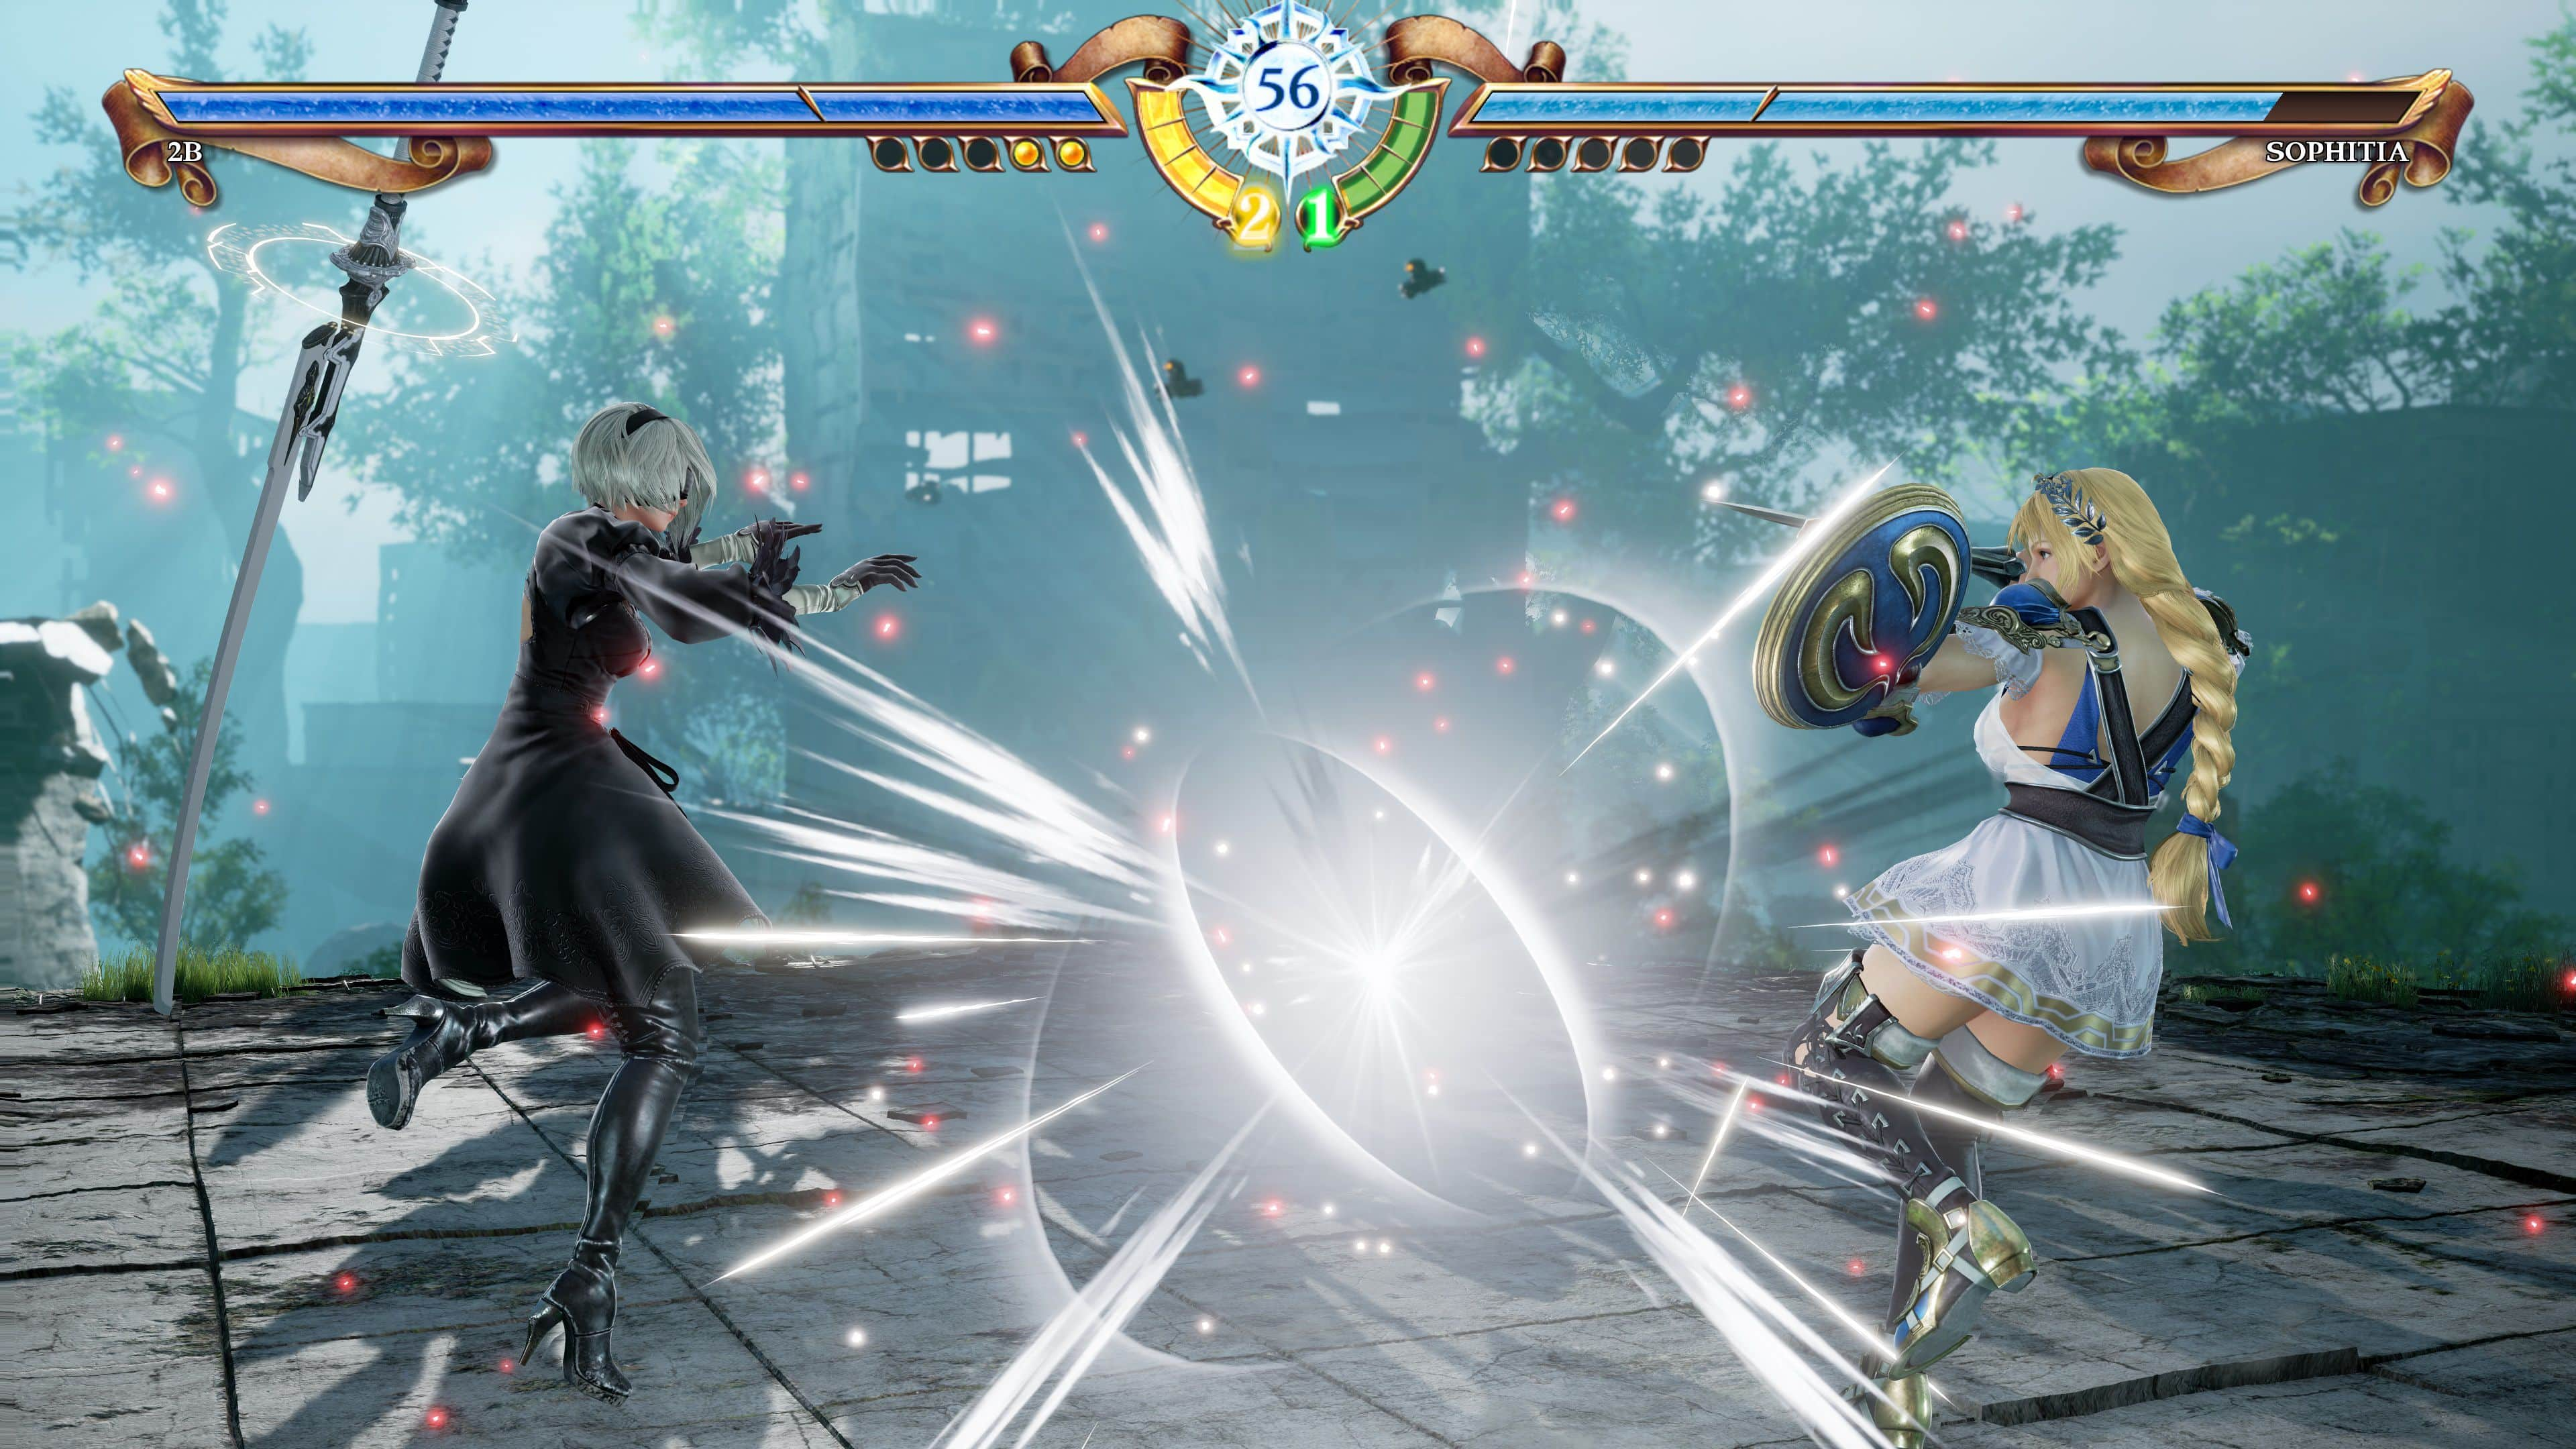 Best Of - Top 8 Fighting Games for PC, Xbox One & PS4 (2019